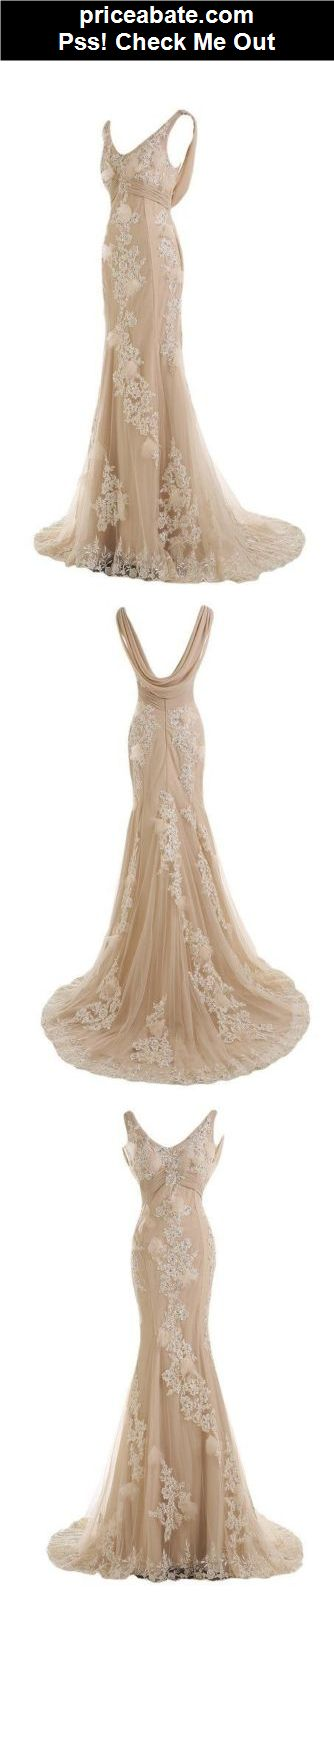 Mermaid Backless Lace Wedding Dress Bridal Gown Custom Size 6 8 10 12 14 16 18 - #priceabate! BUY IT NOW ONLY $128